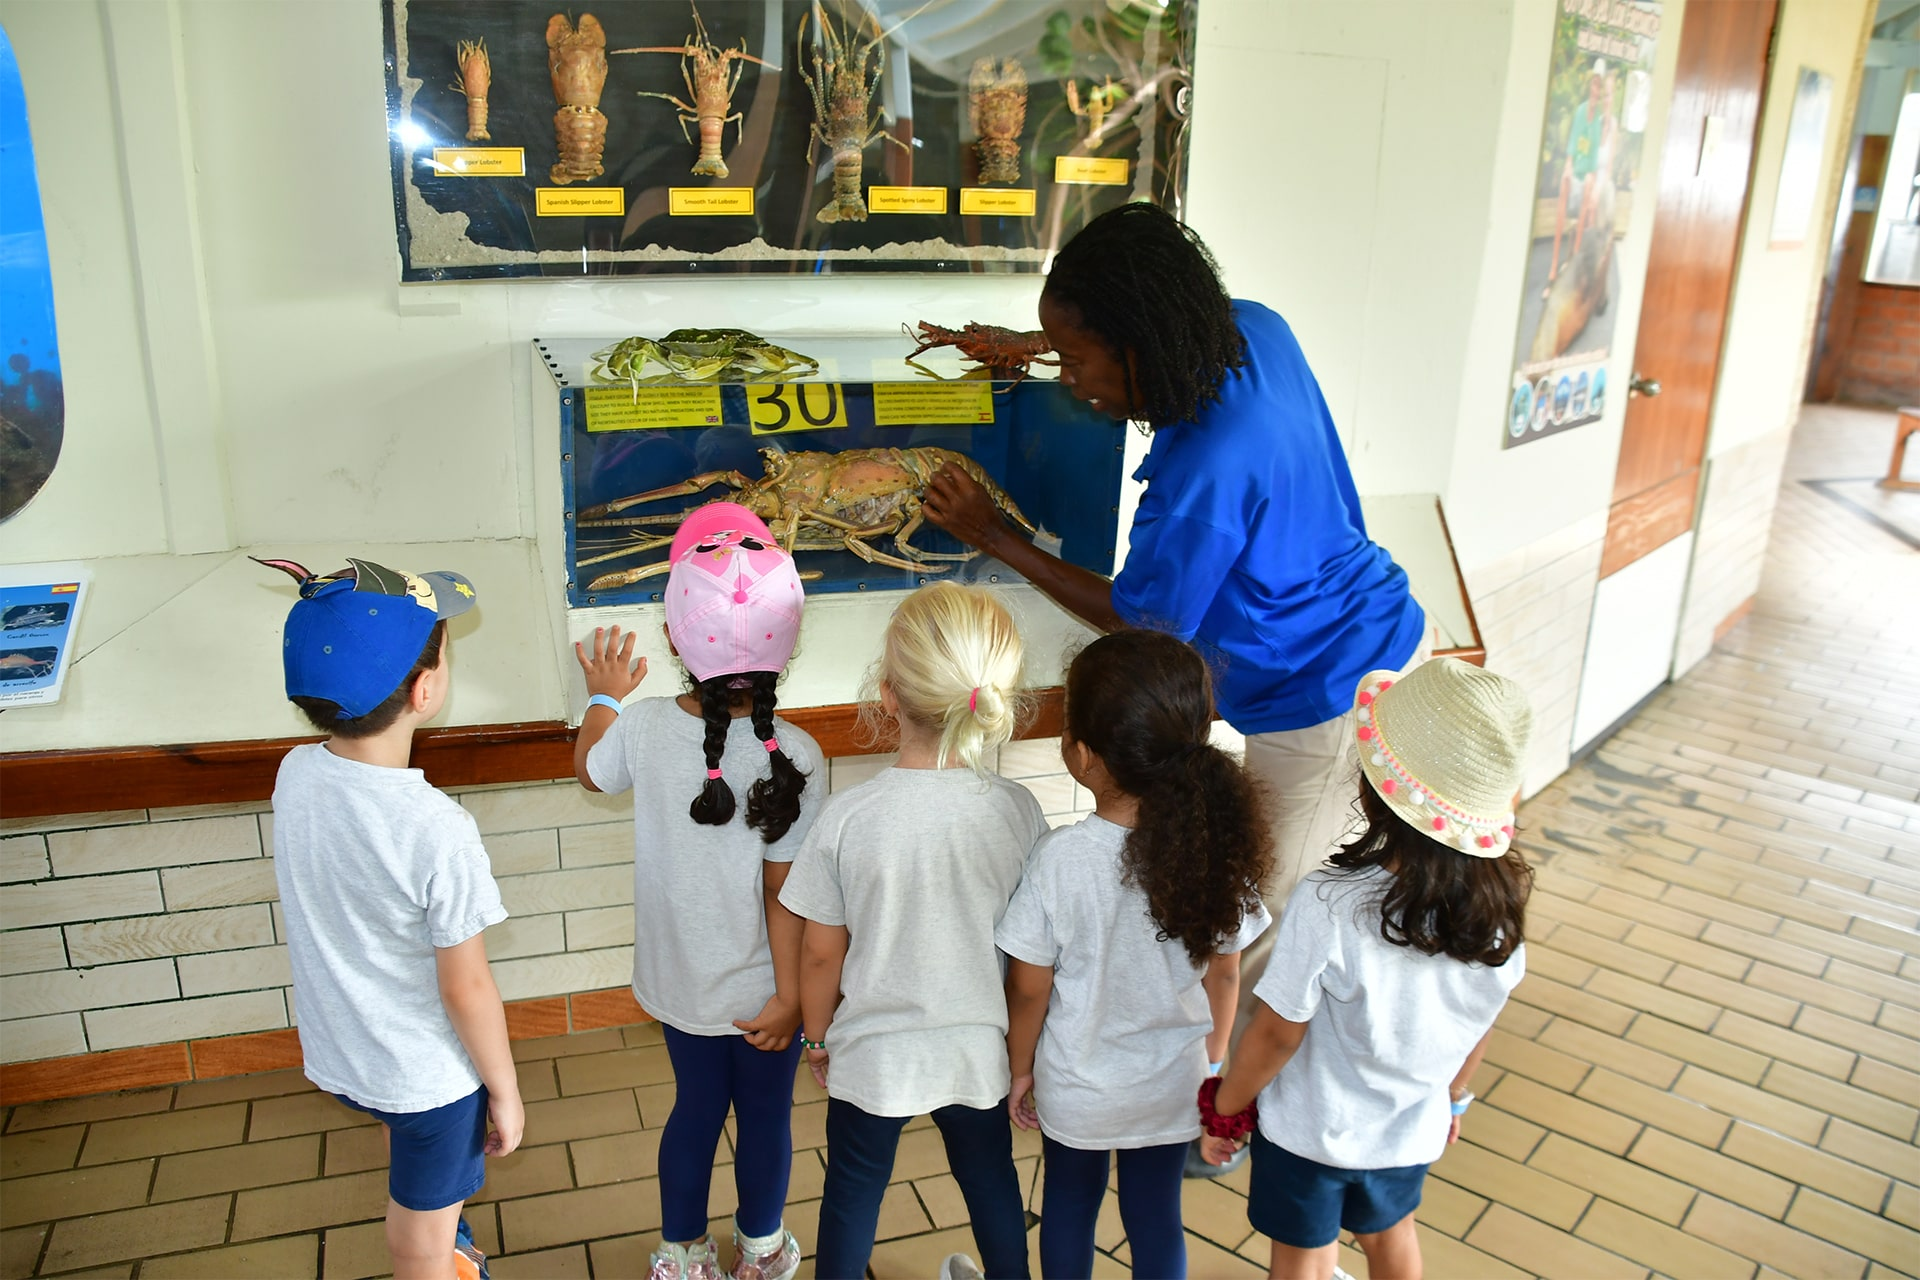 5 children watch and listen attentively to the explanations of sea animals from an attendant at the sea aquarium Curaçao.